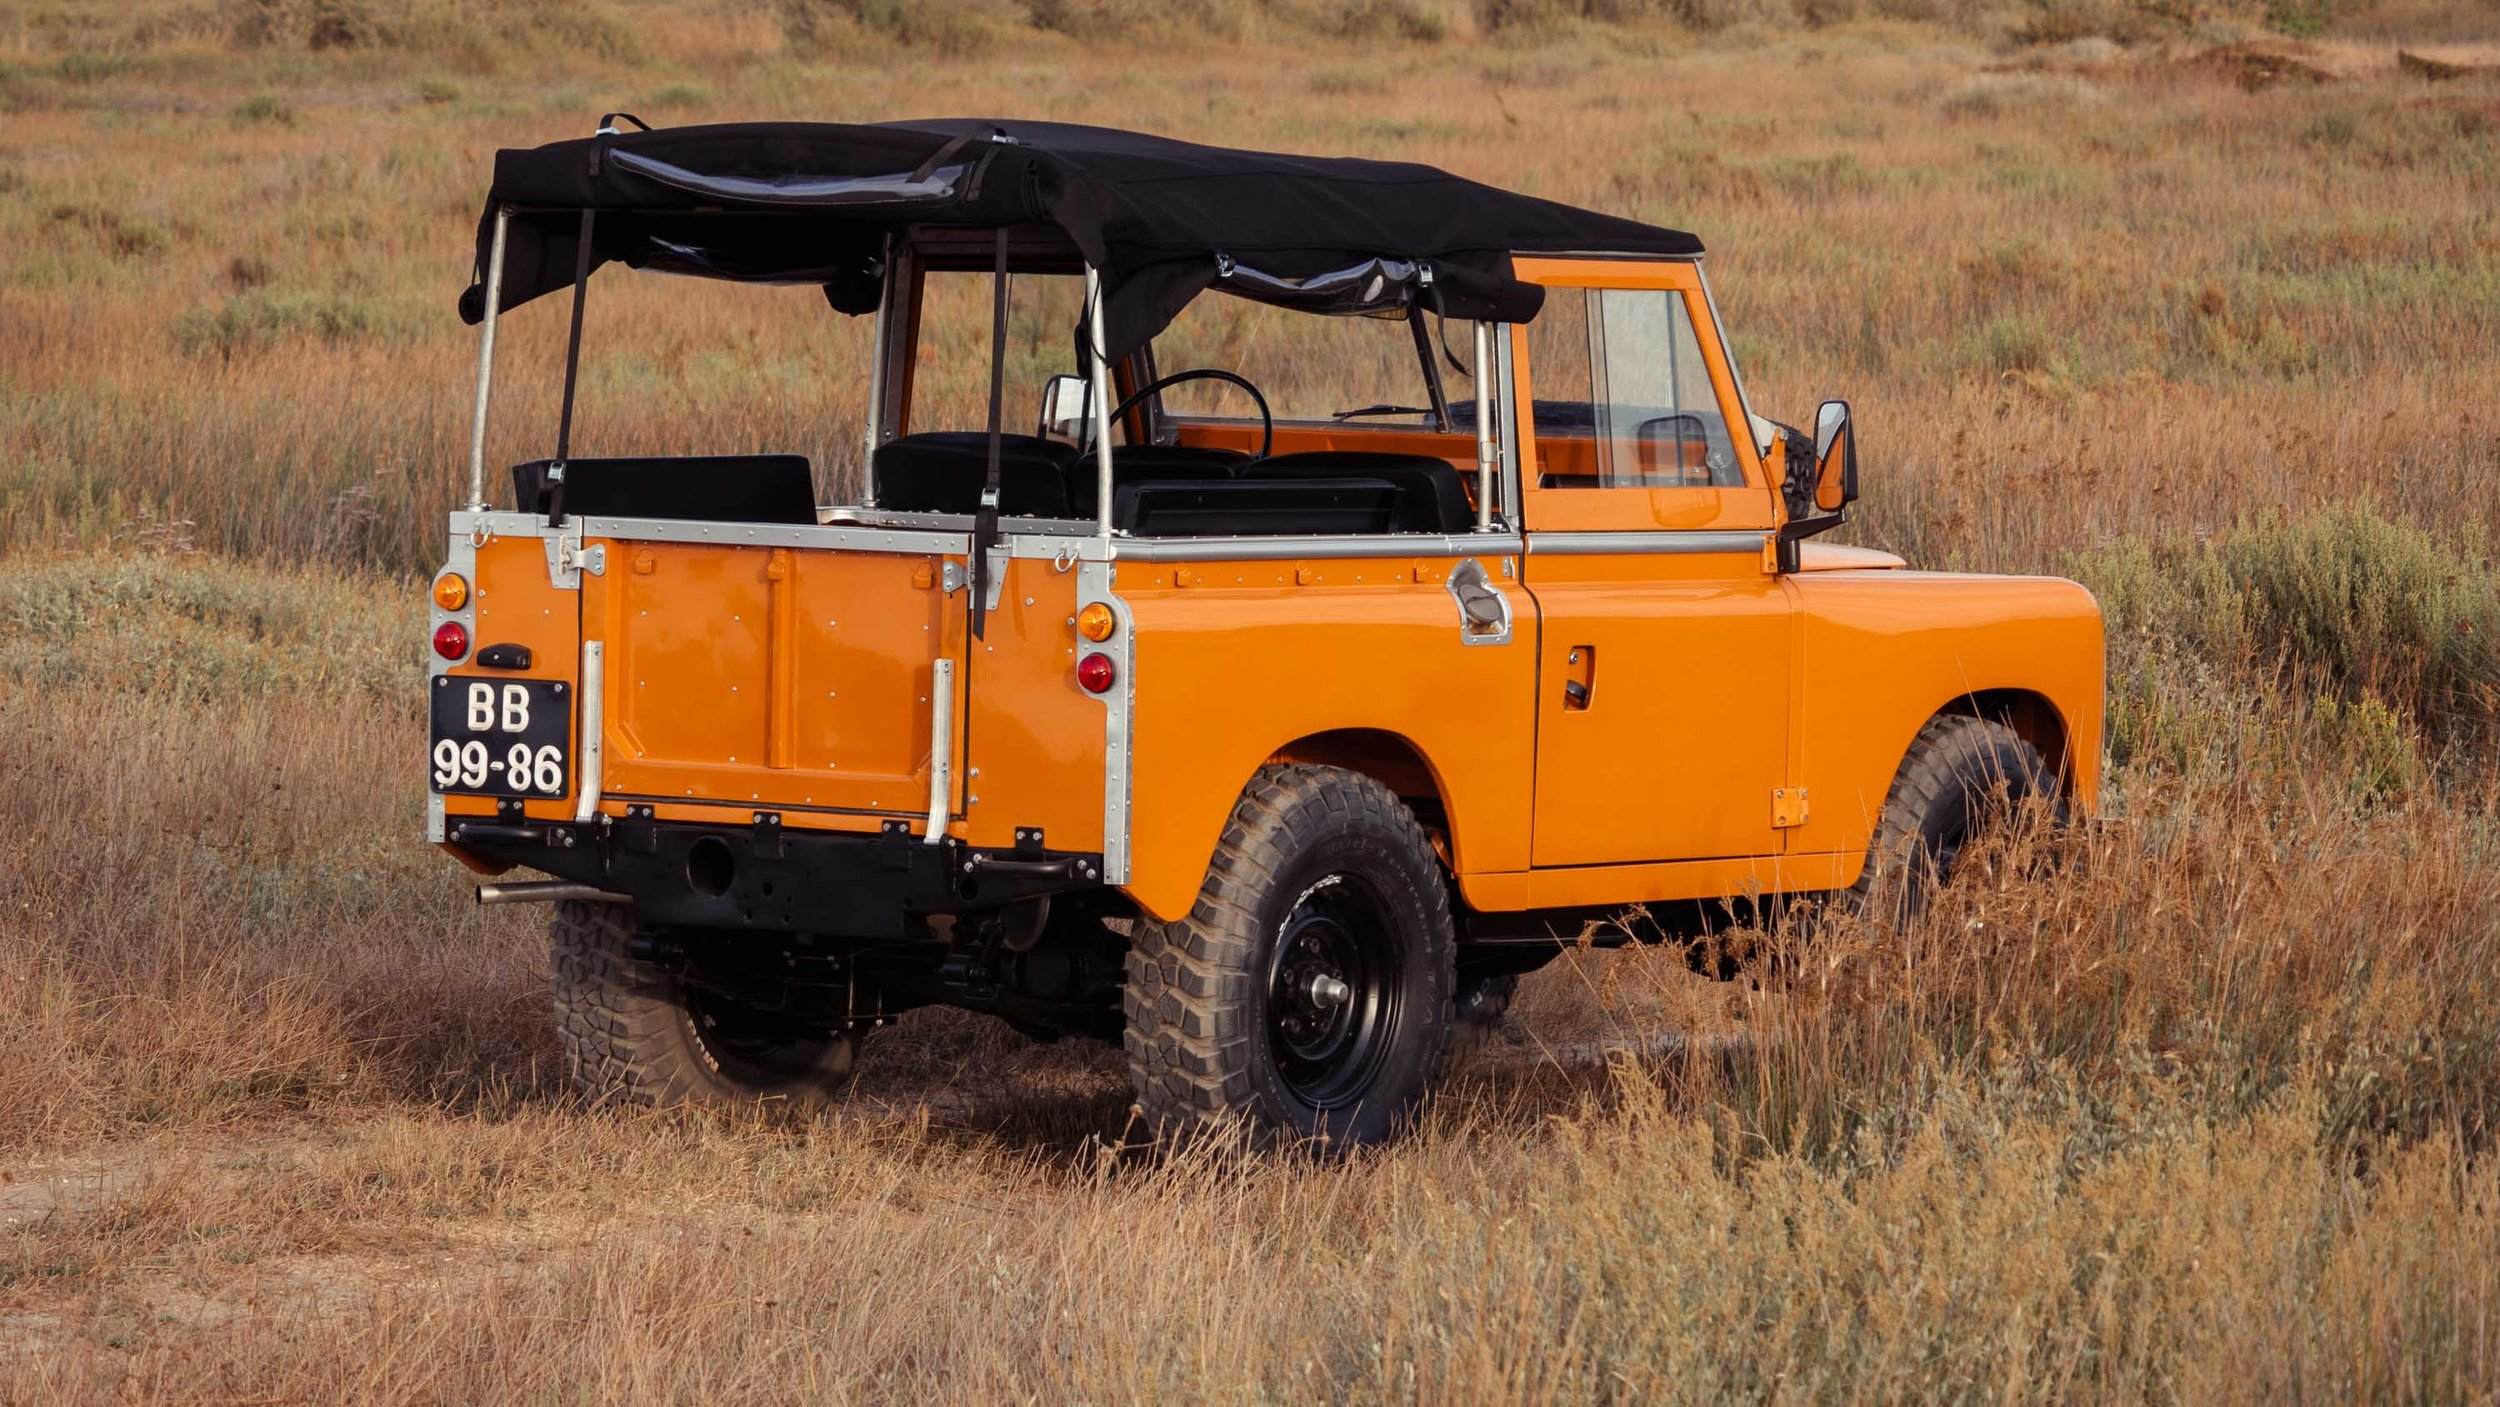 Coolnvintage Land Rover SIII (124 of 137).jpg